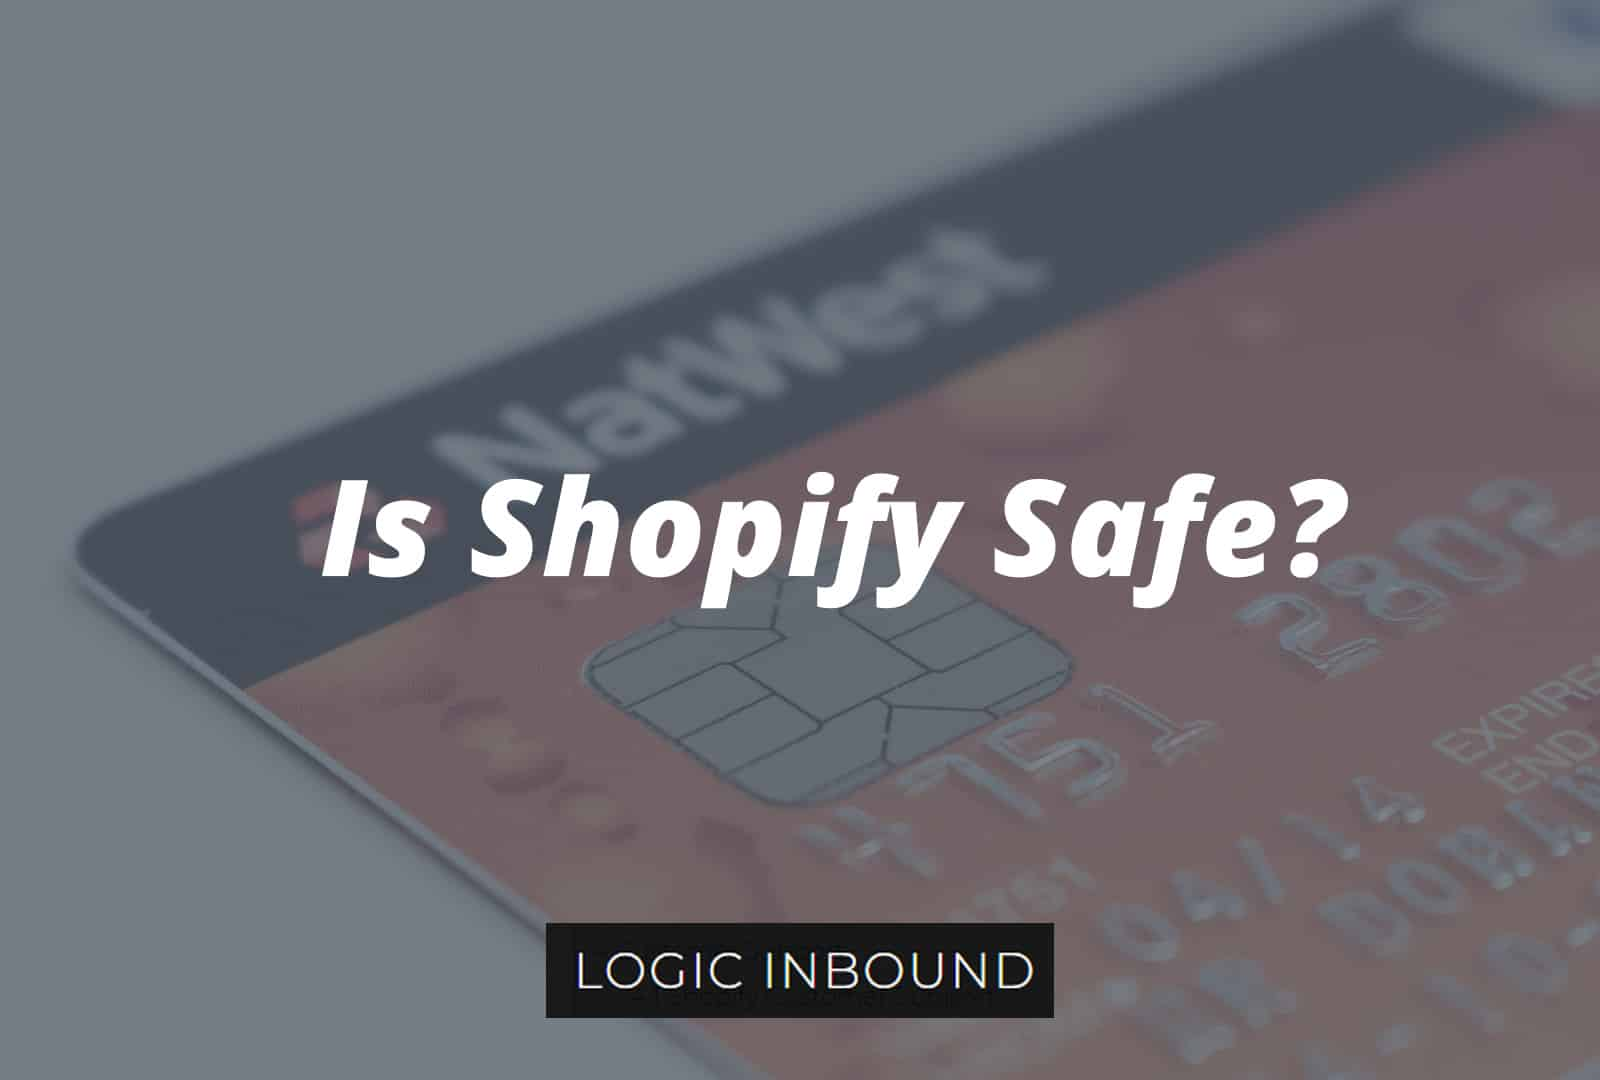 Is Shopify Safe? Can It Be Hacked? Learn if Shopify is Secure & Reliable